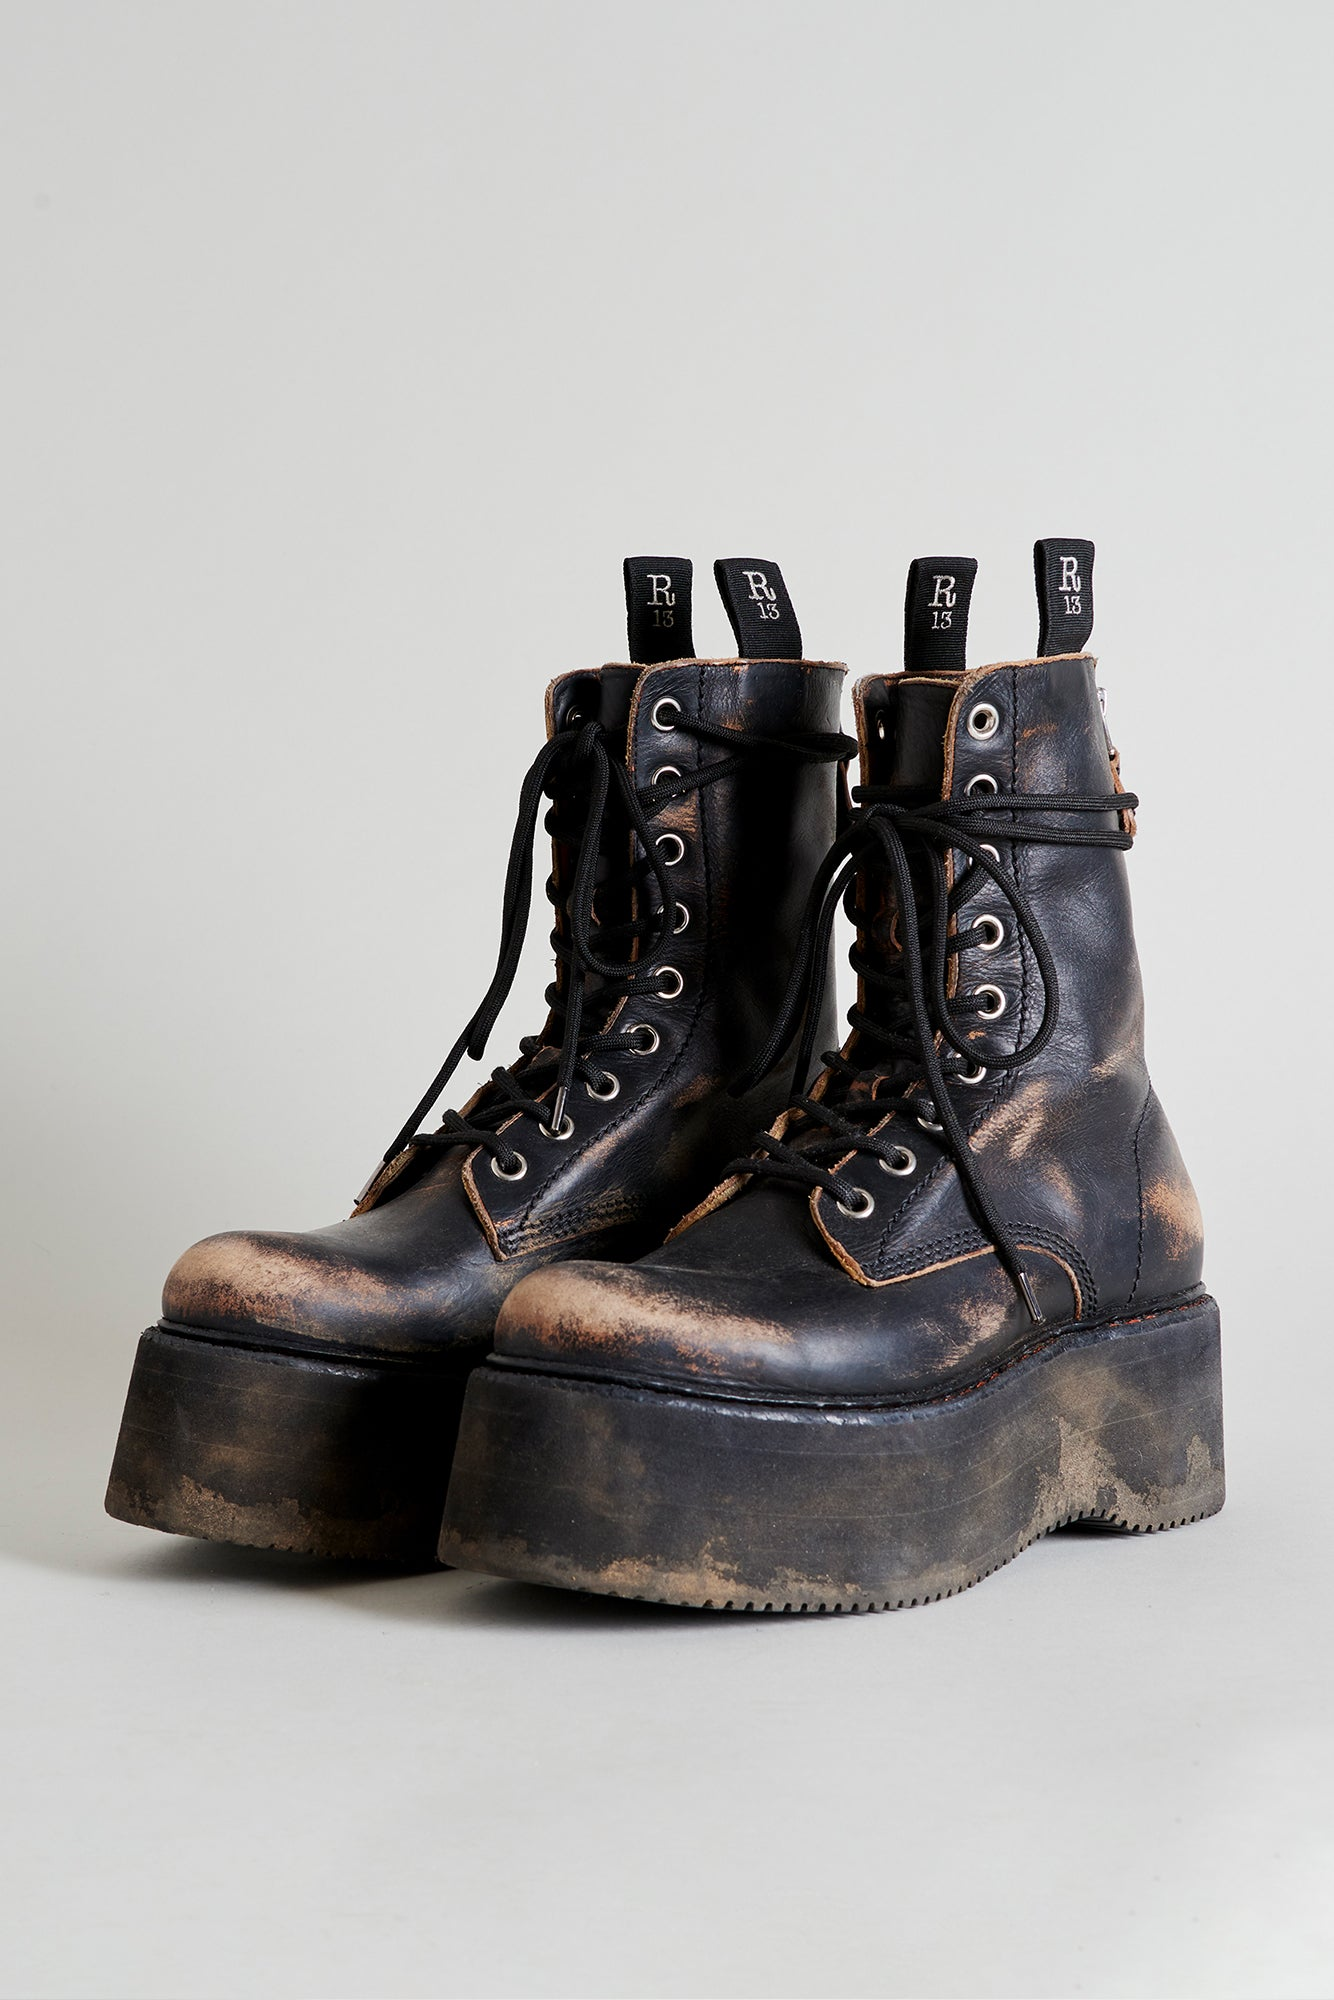 Double Lace-Up Boots - Cracked Black